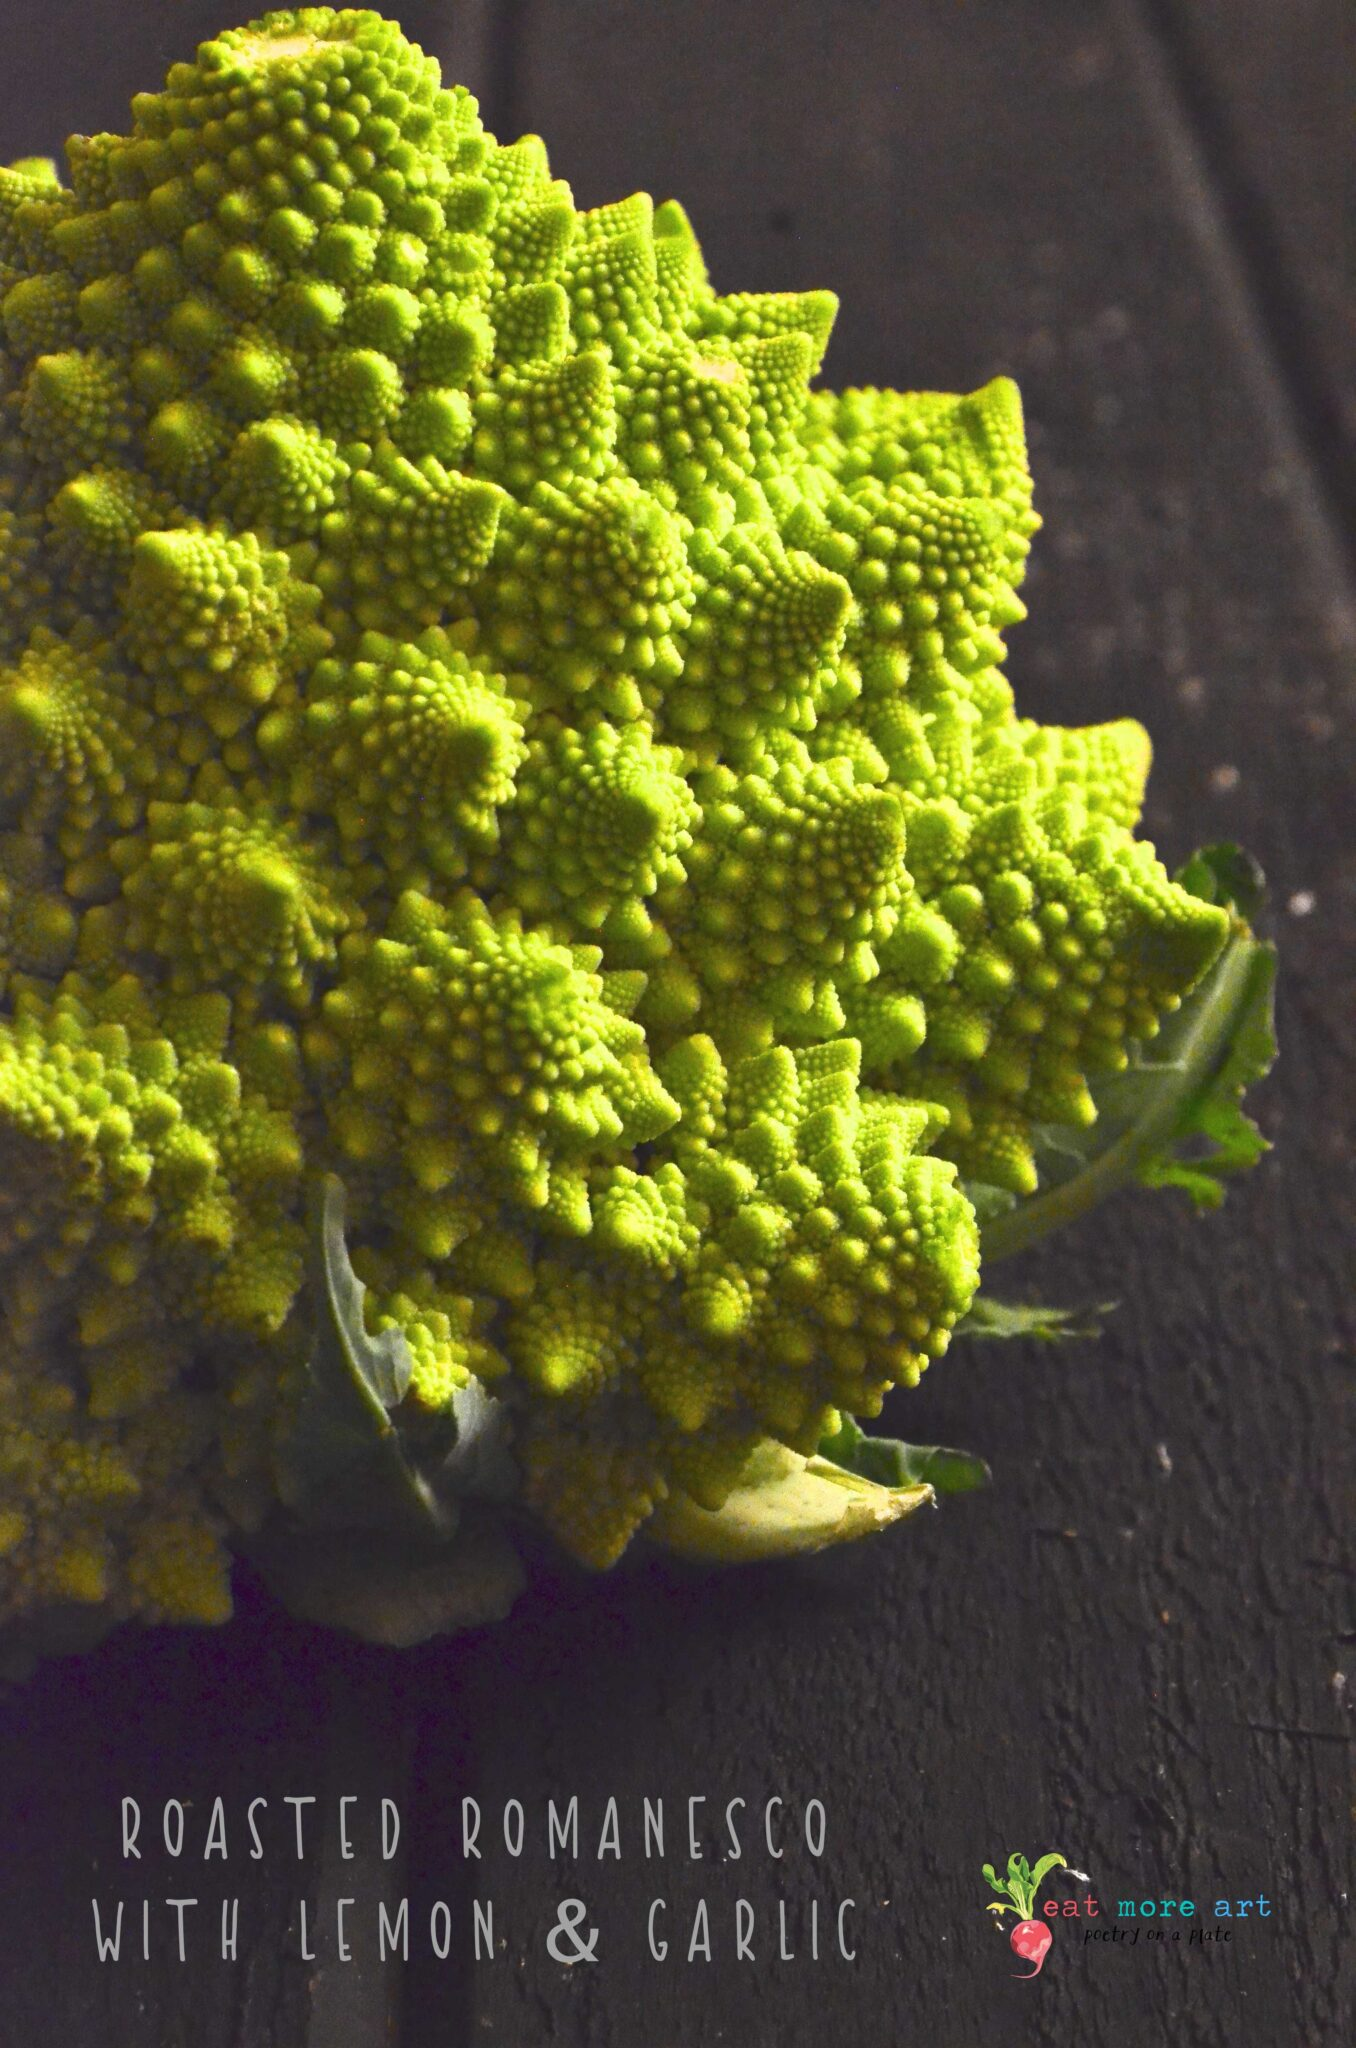 Roasted Romanesco with Lemon & Garlic